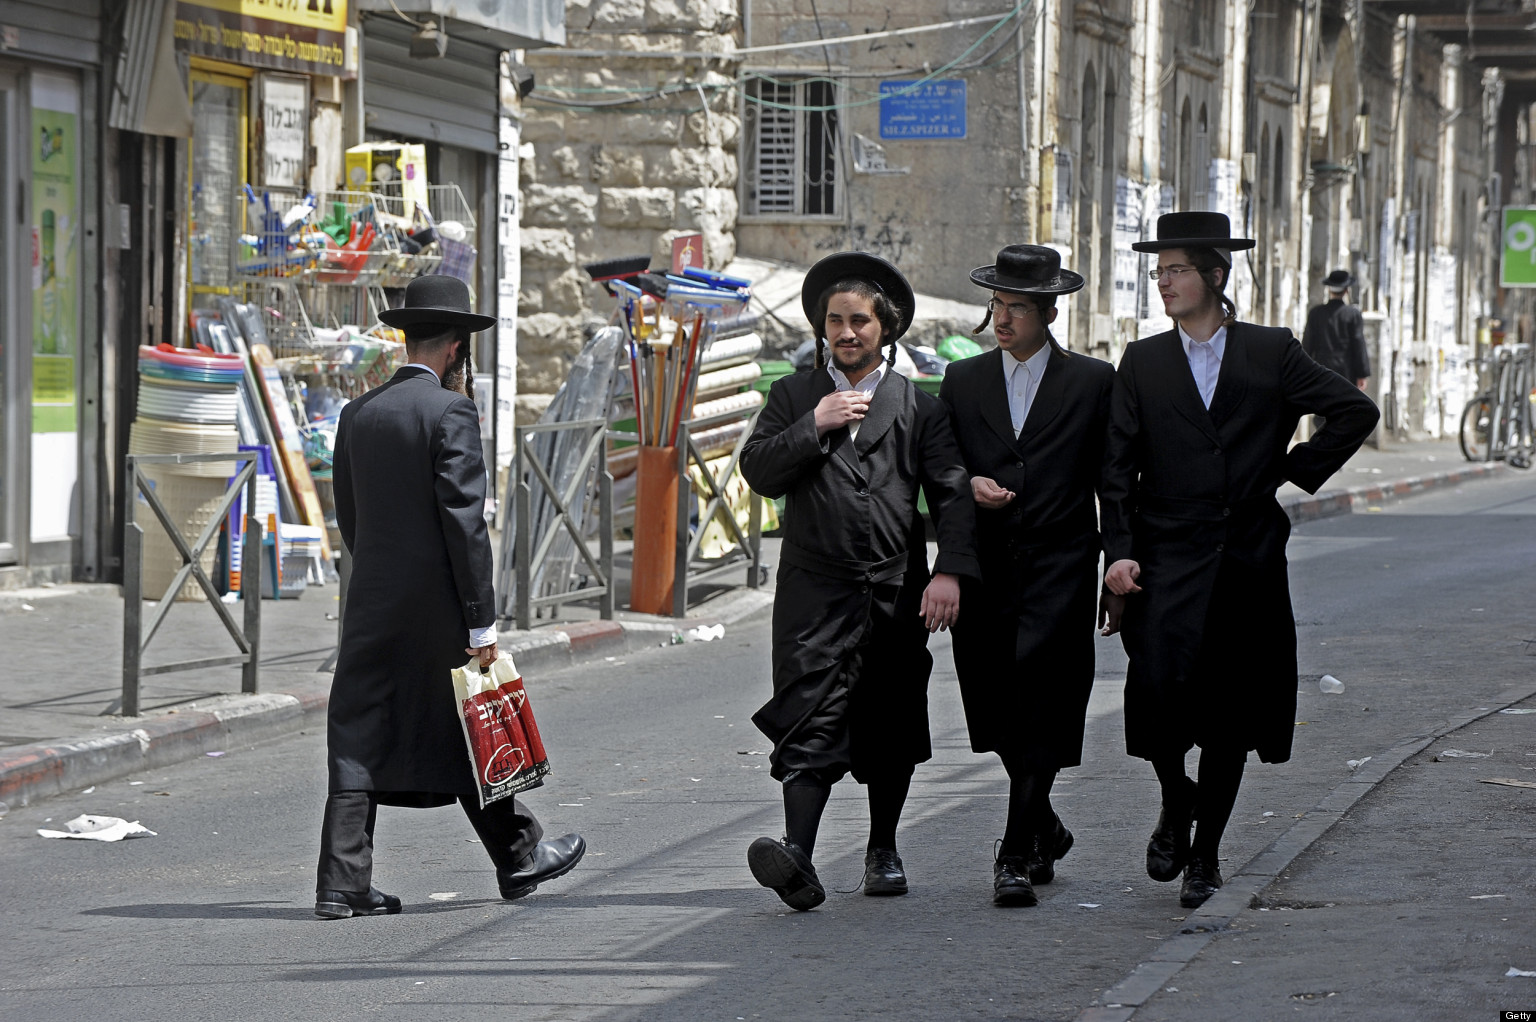 Haredi Jews In Israel: Ultra-Orthodox Jews In Israel Face Reform Drive As Haredim